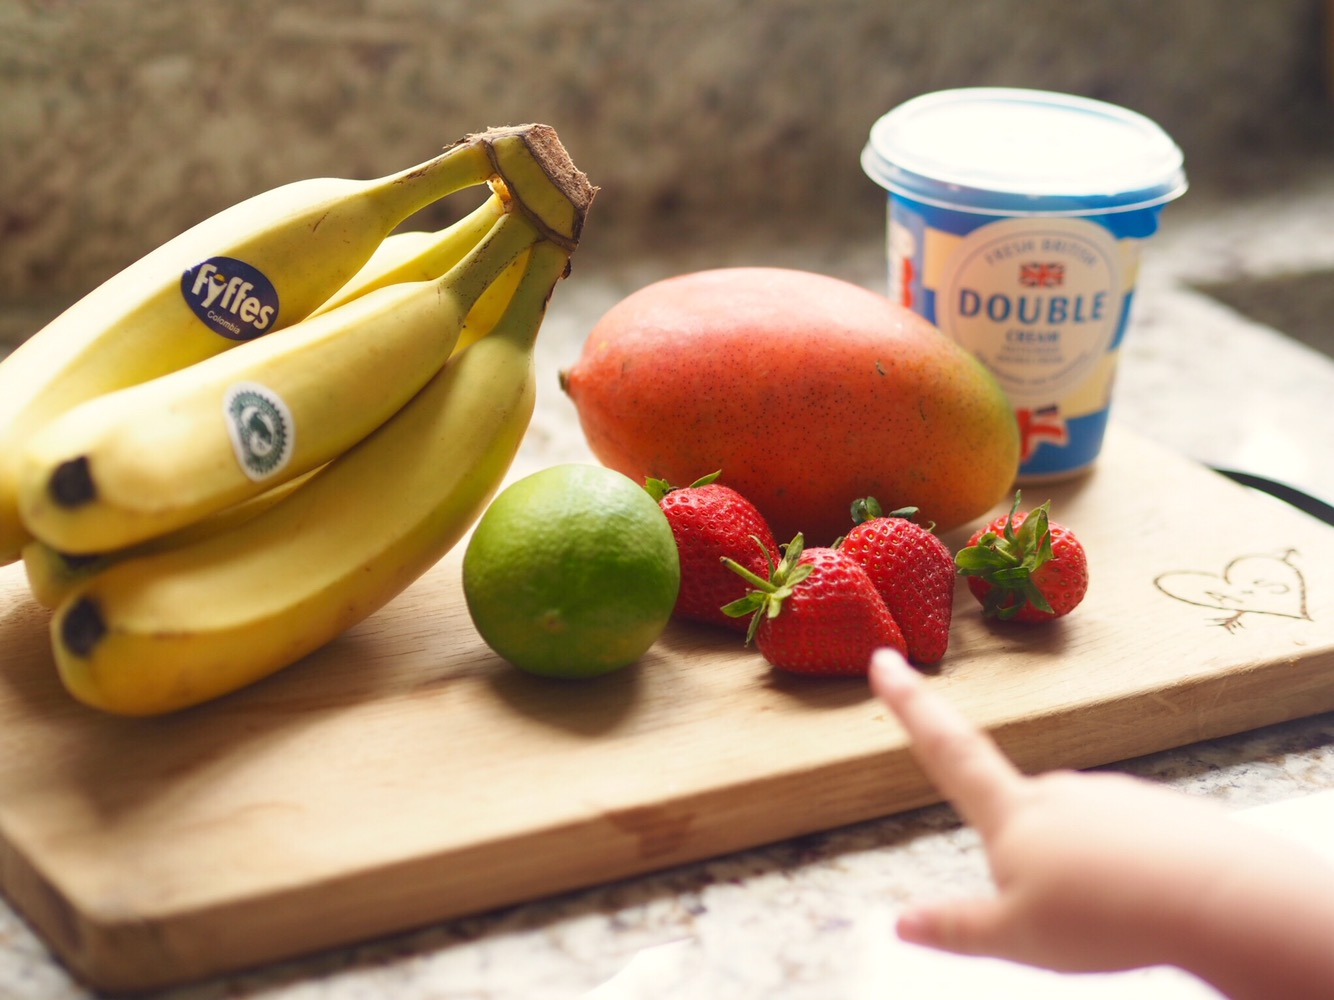 Fruit ice lollies with Tommee Tippee steamer blender